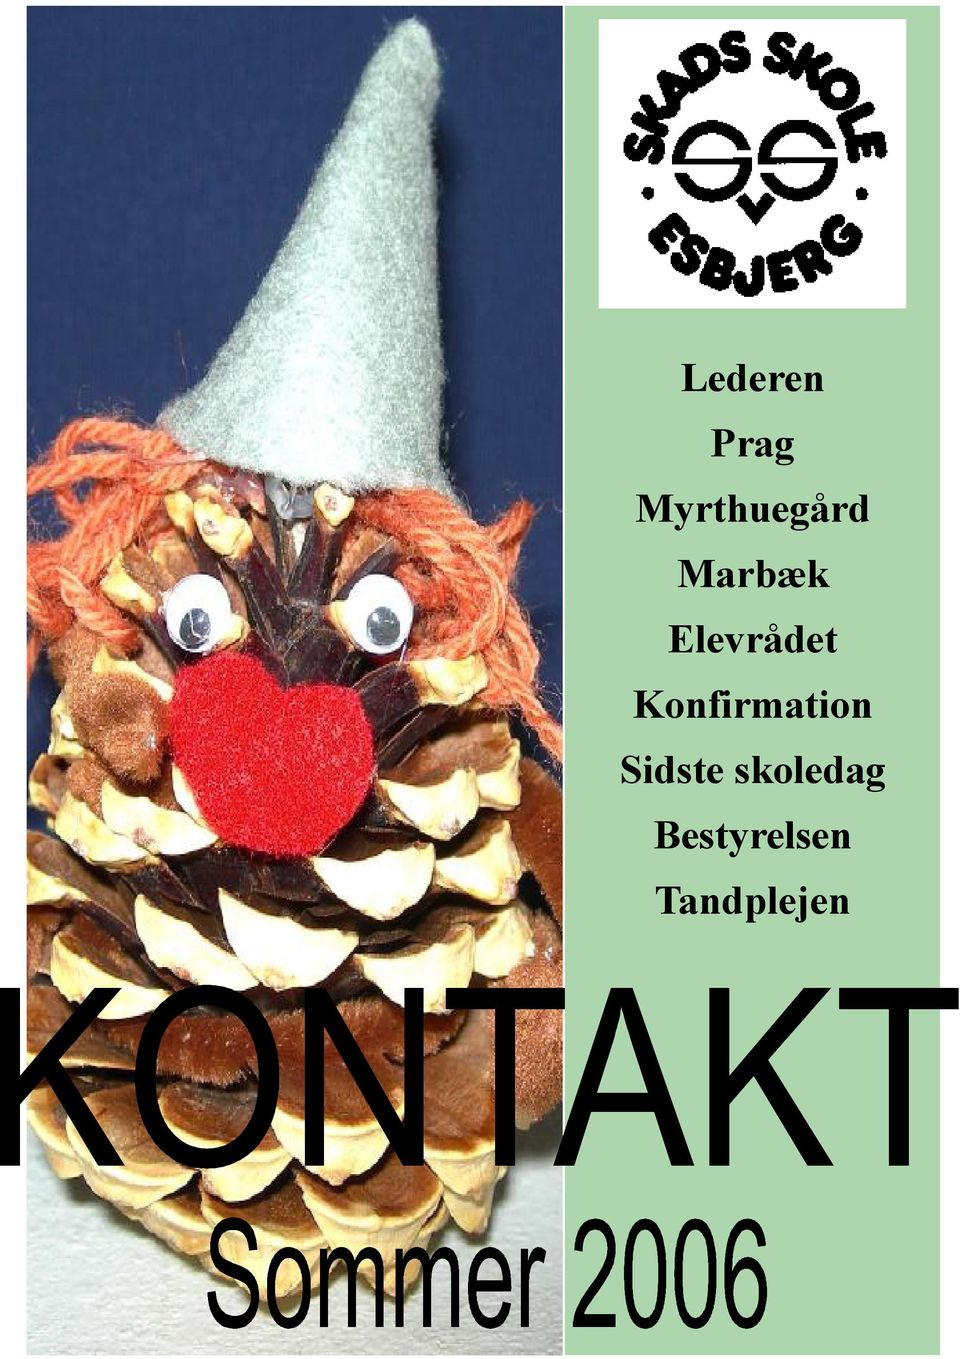 Elevrådet Konfirmation